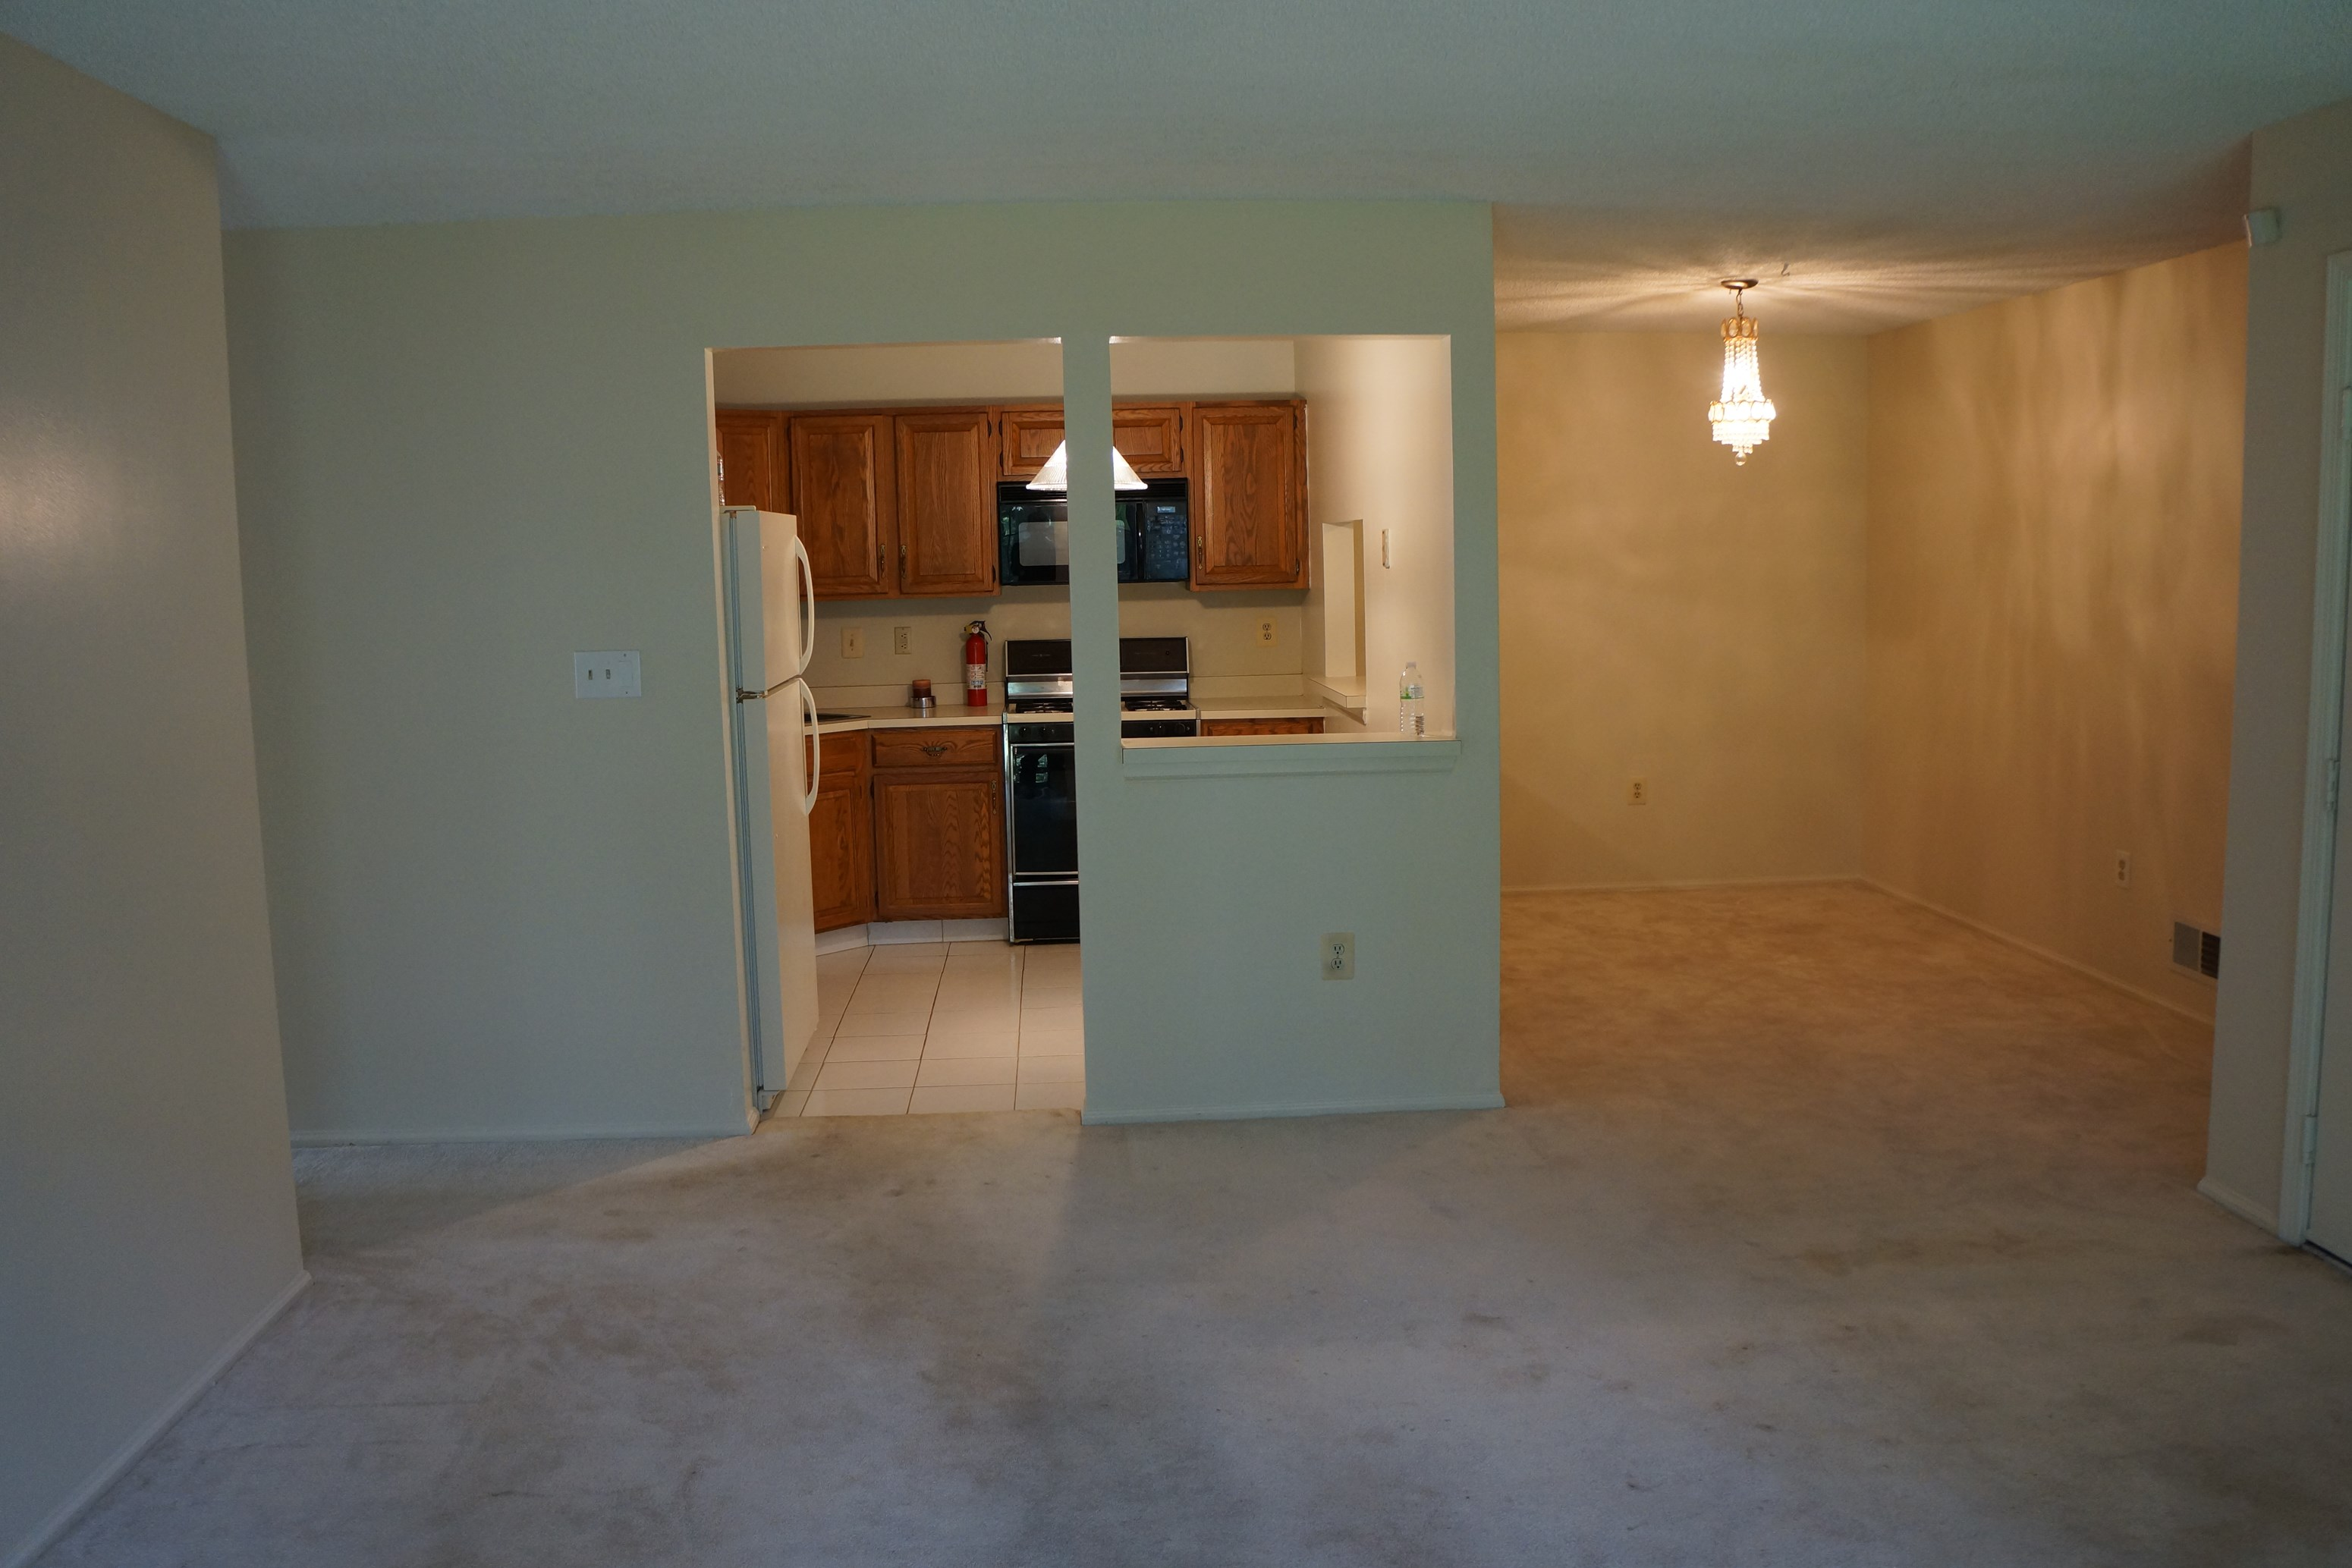 beautiful 2 bedroom apartment for rent in franklin park close to